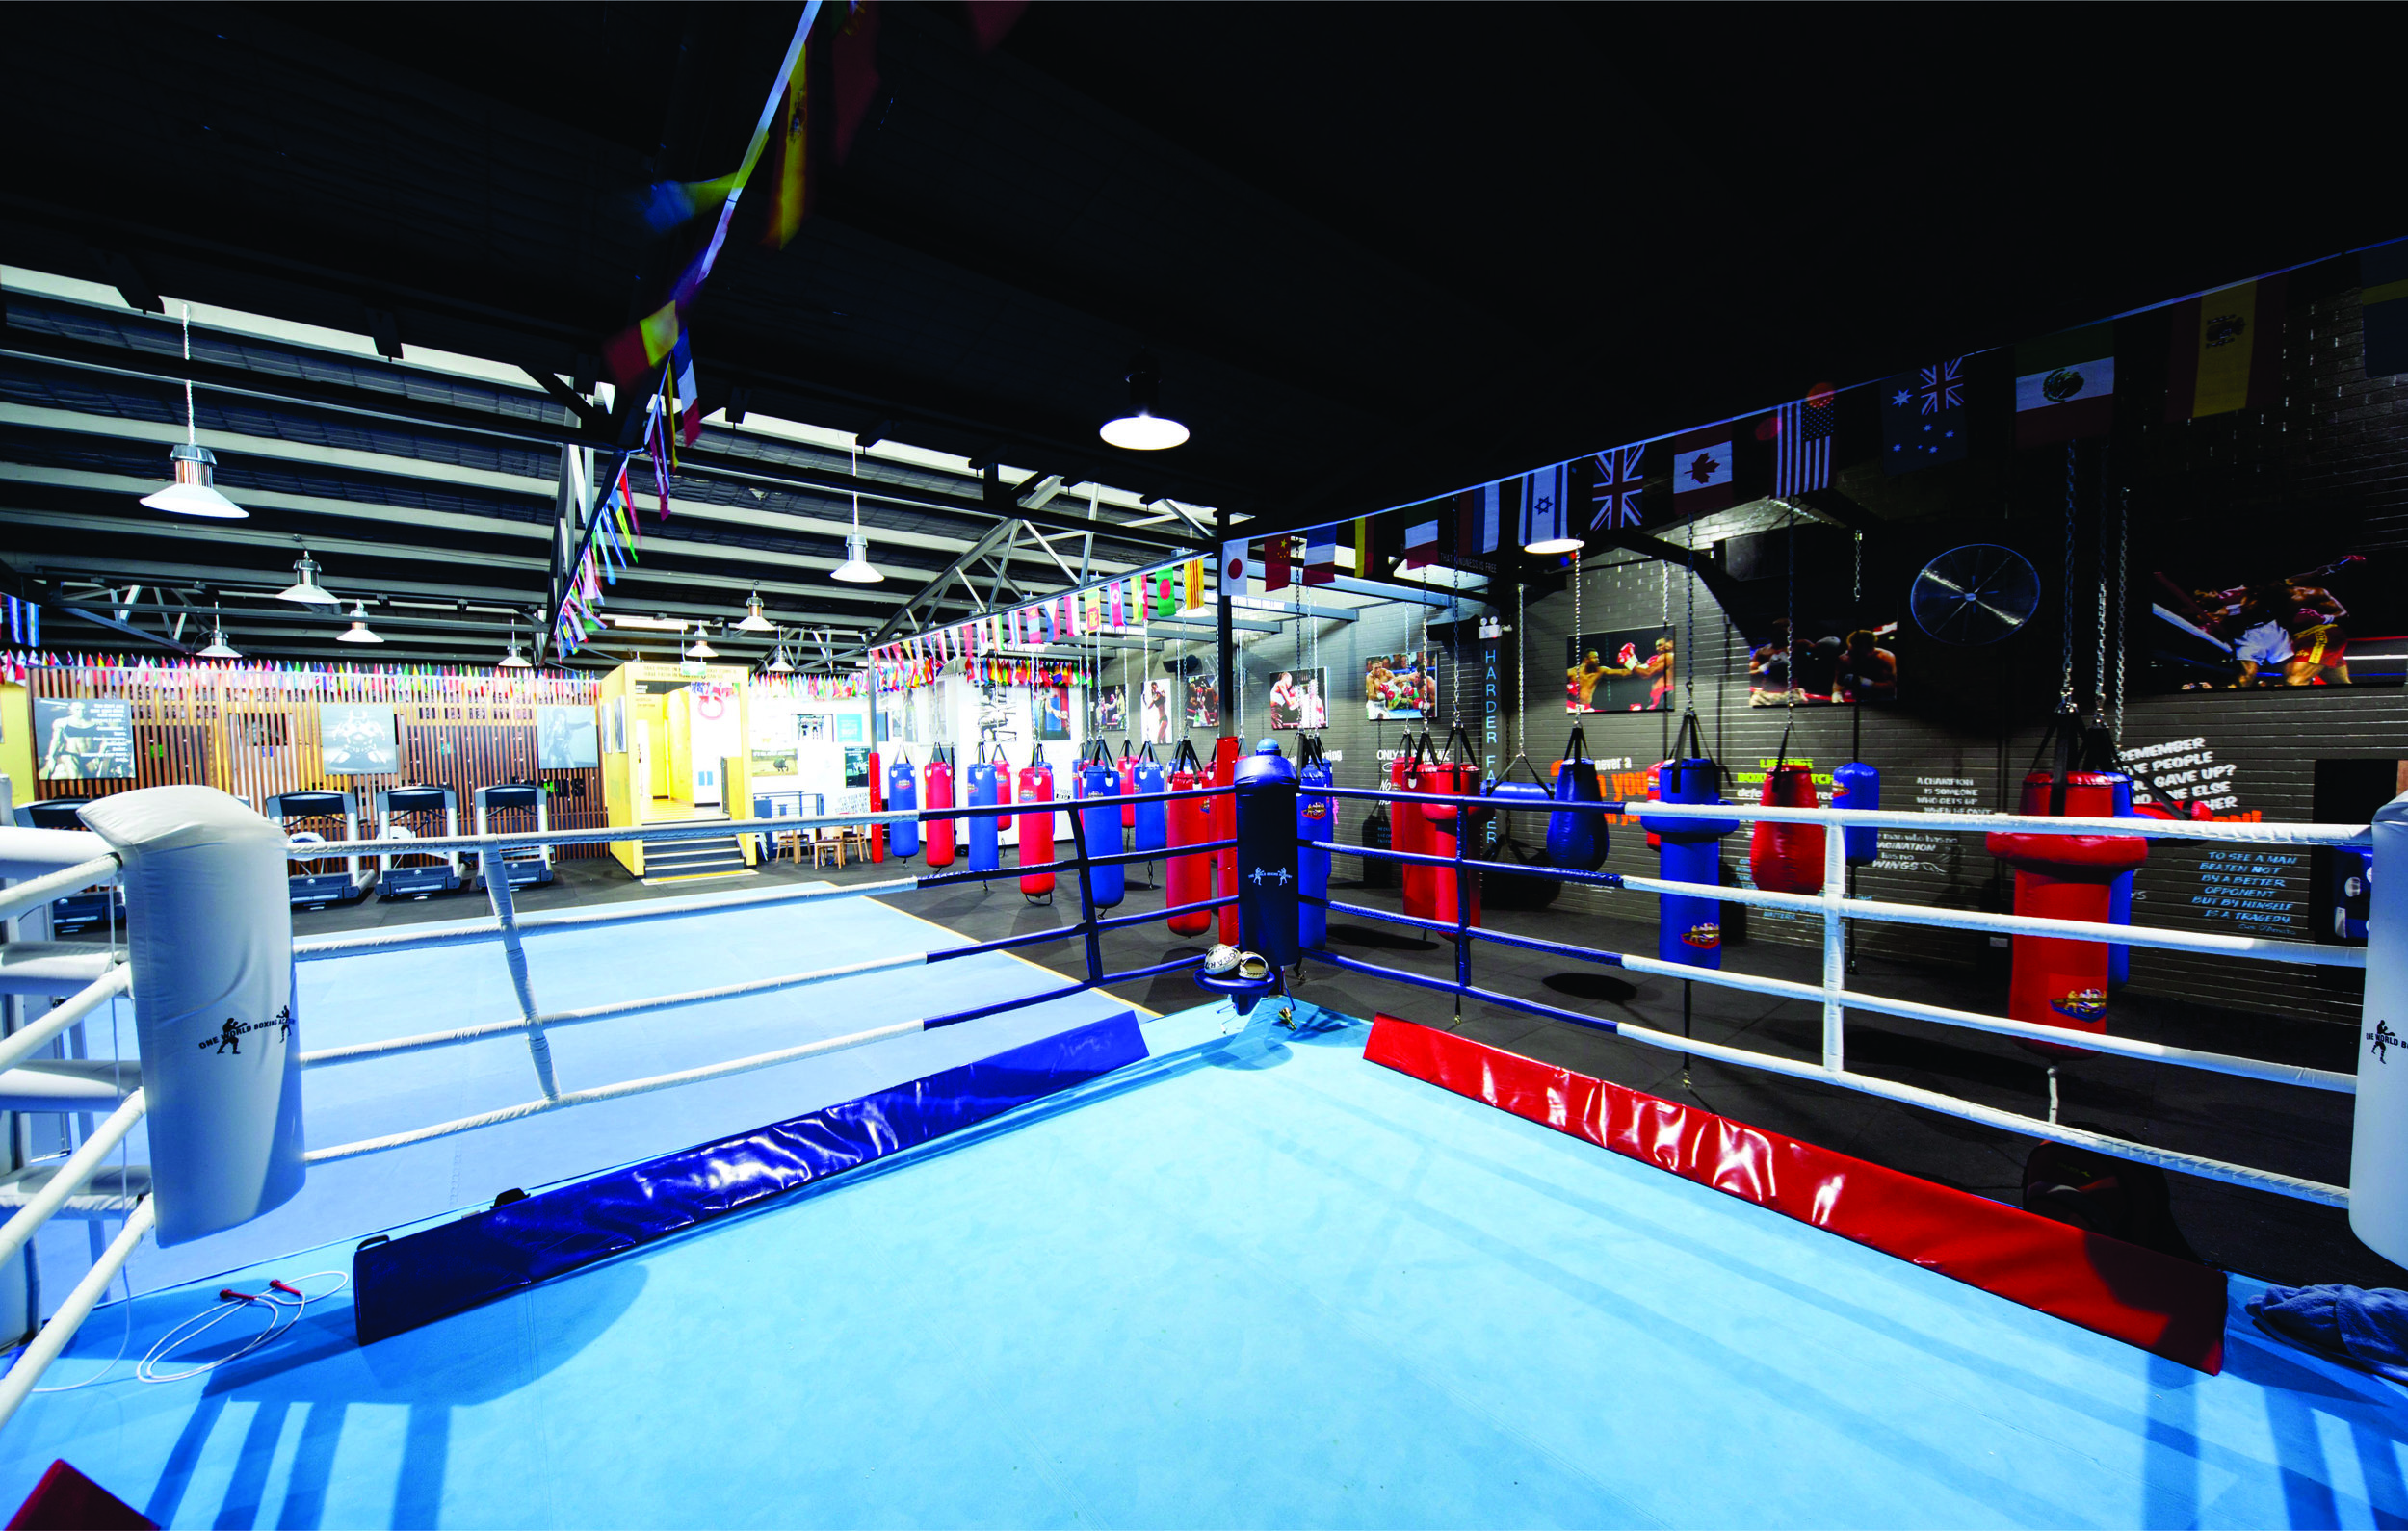 the concept signage boxing ring.jpg